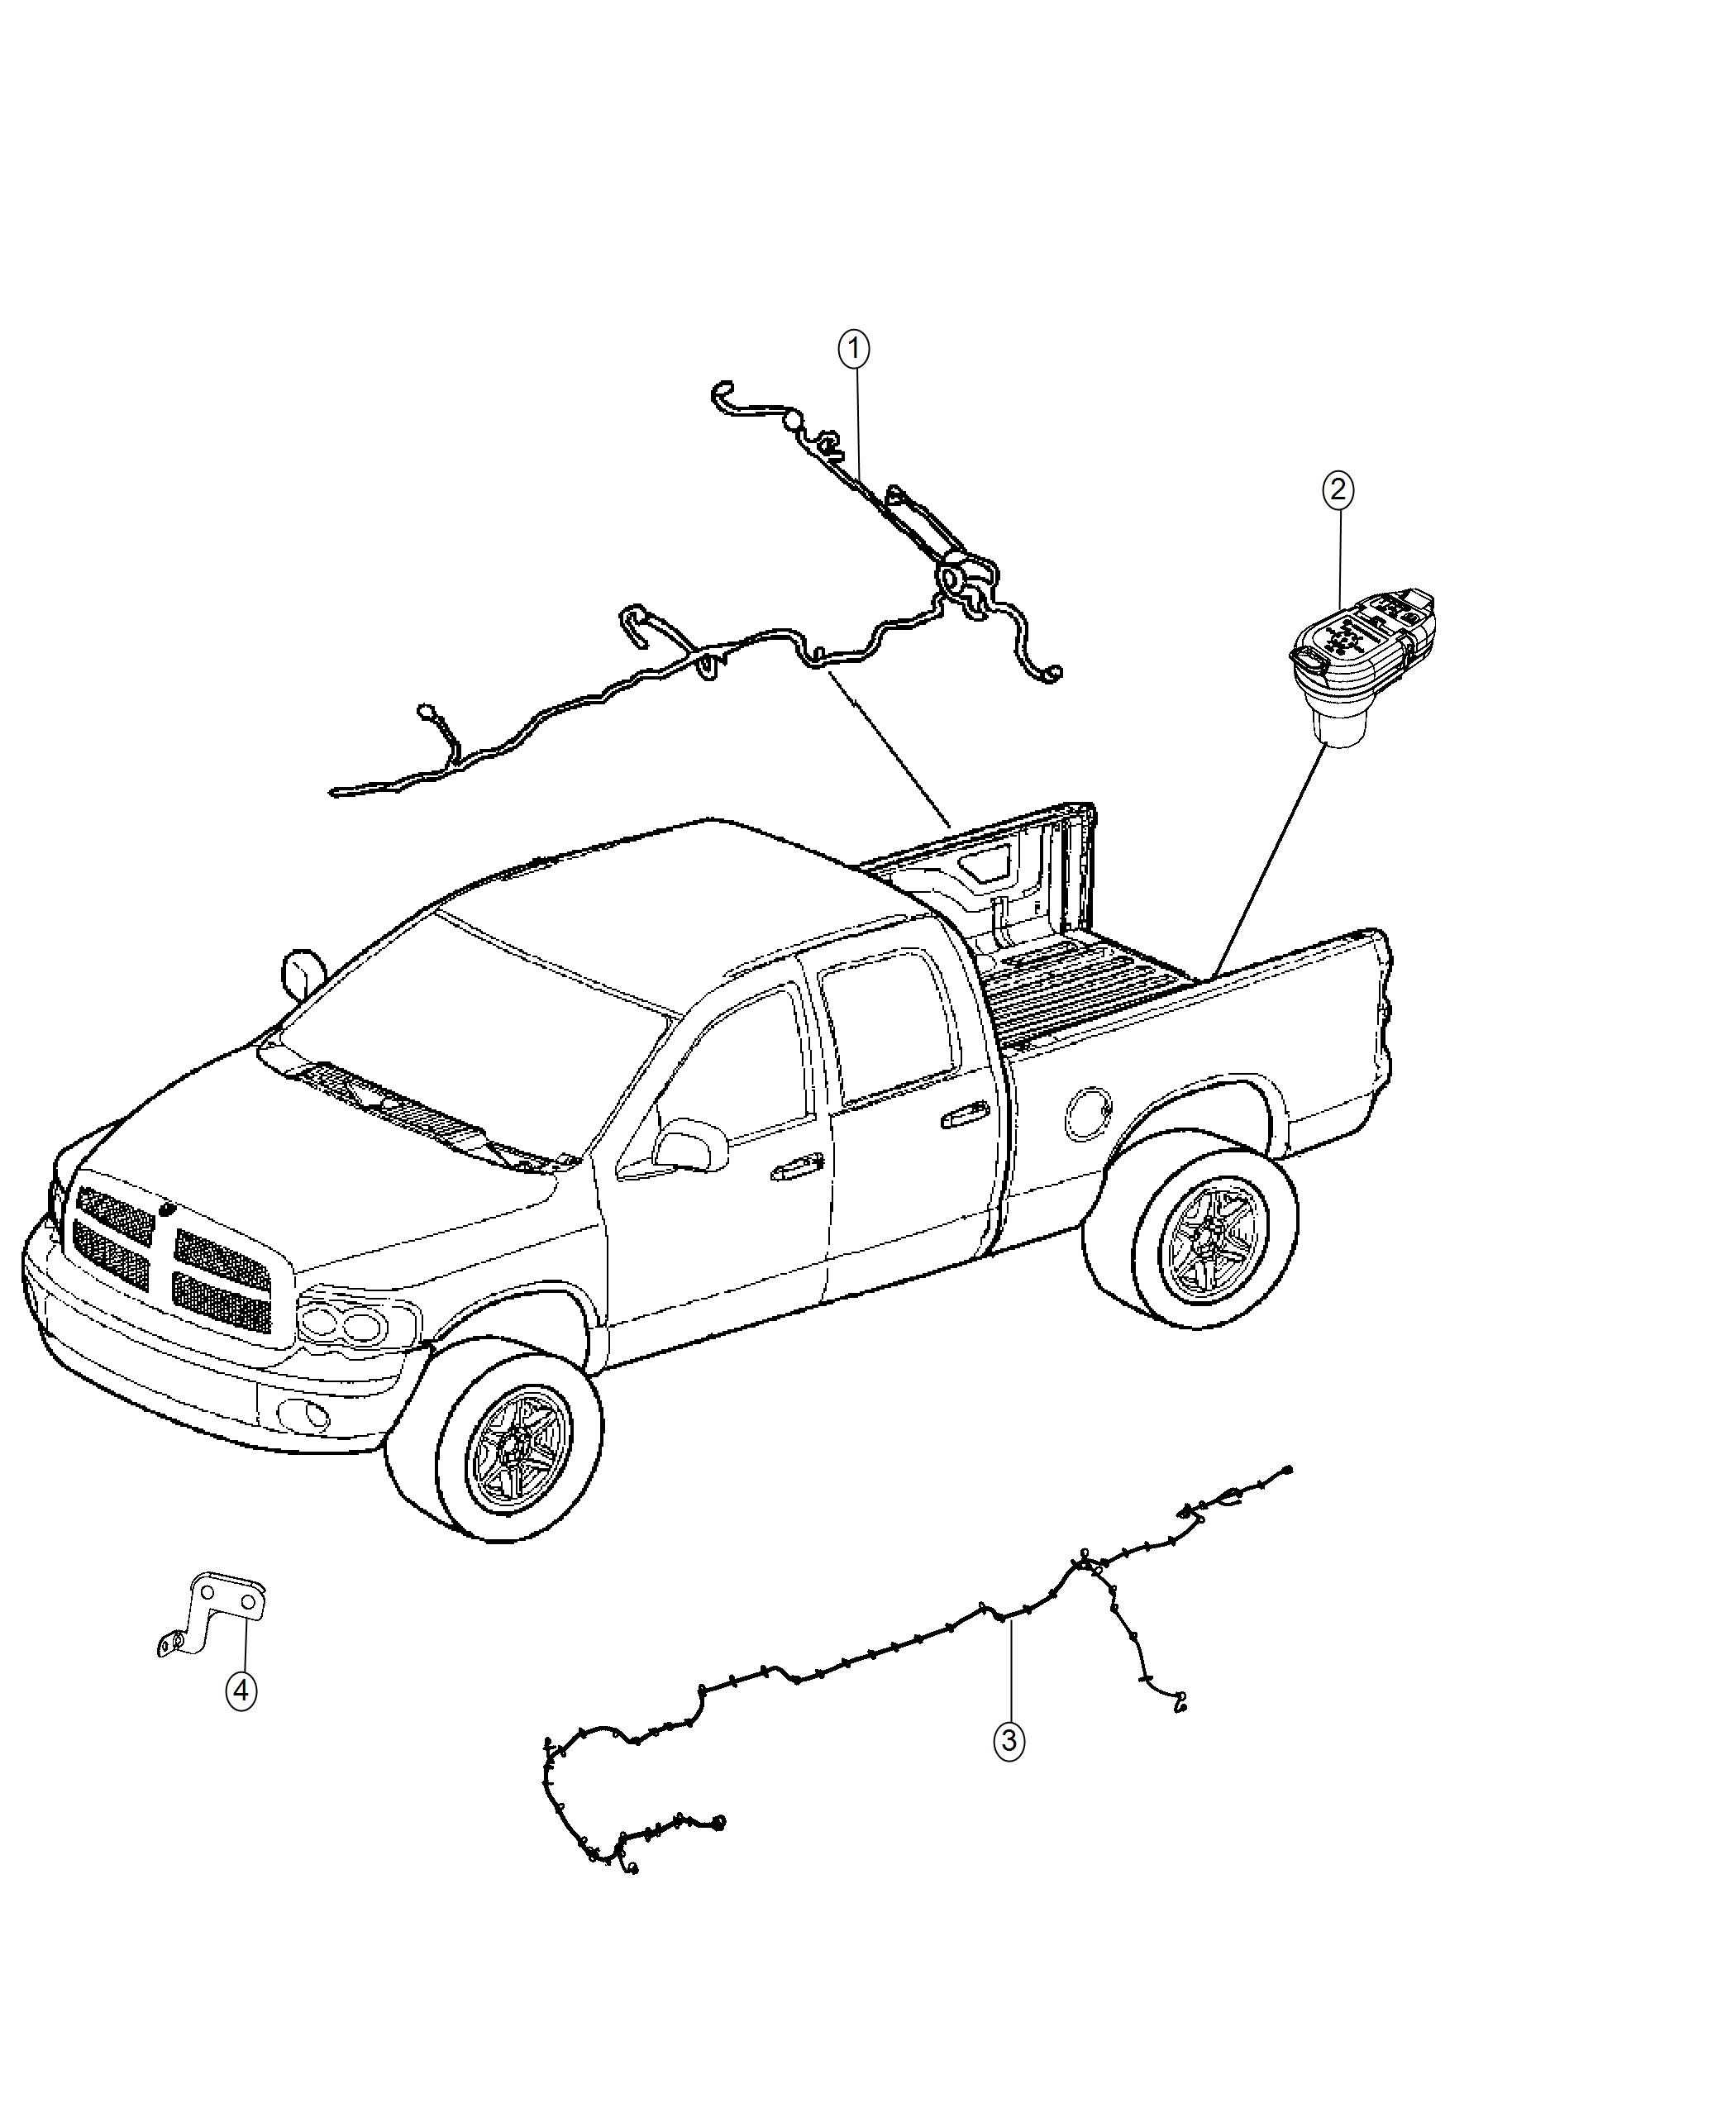 Ram Jumper Front Axle Disconnect